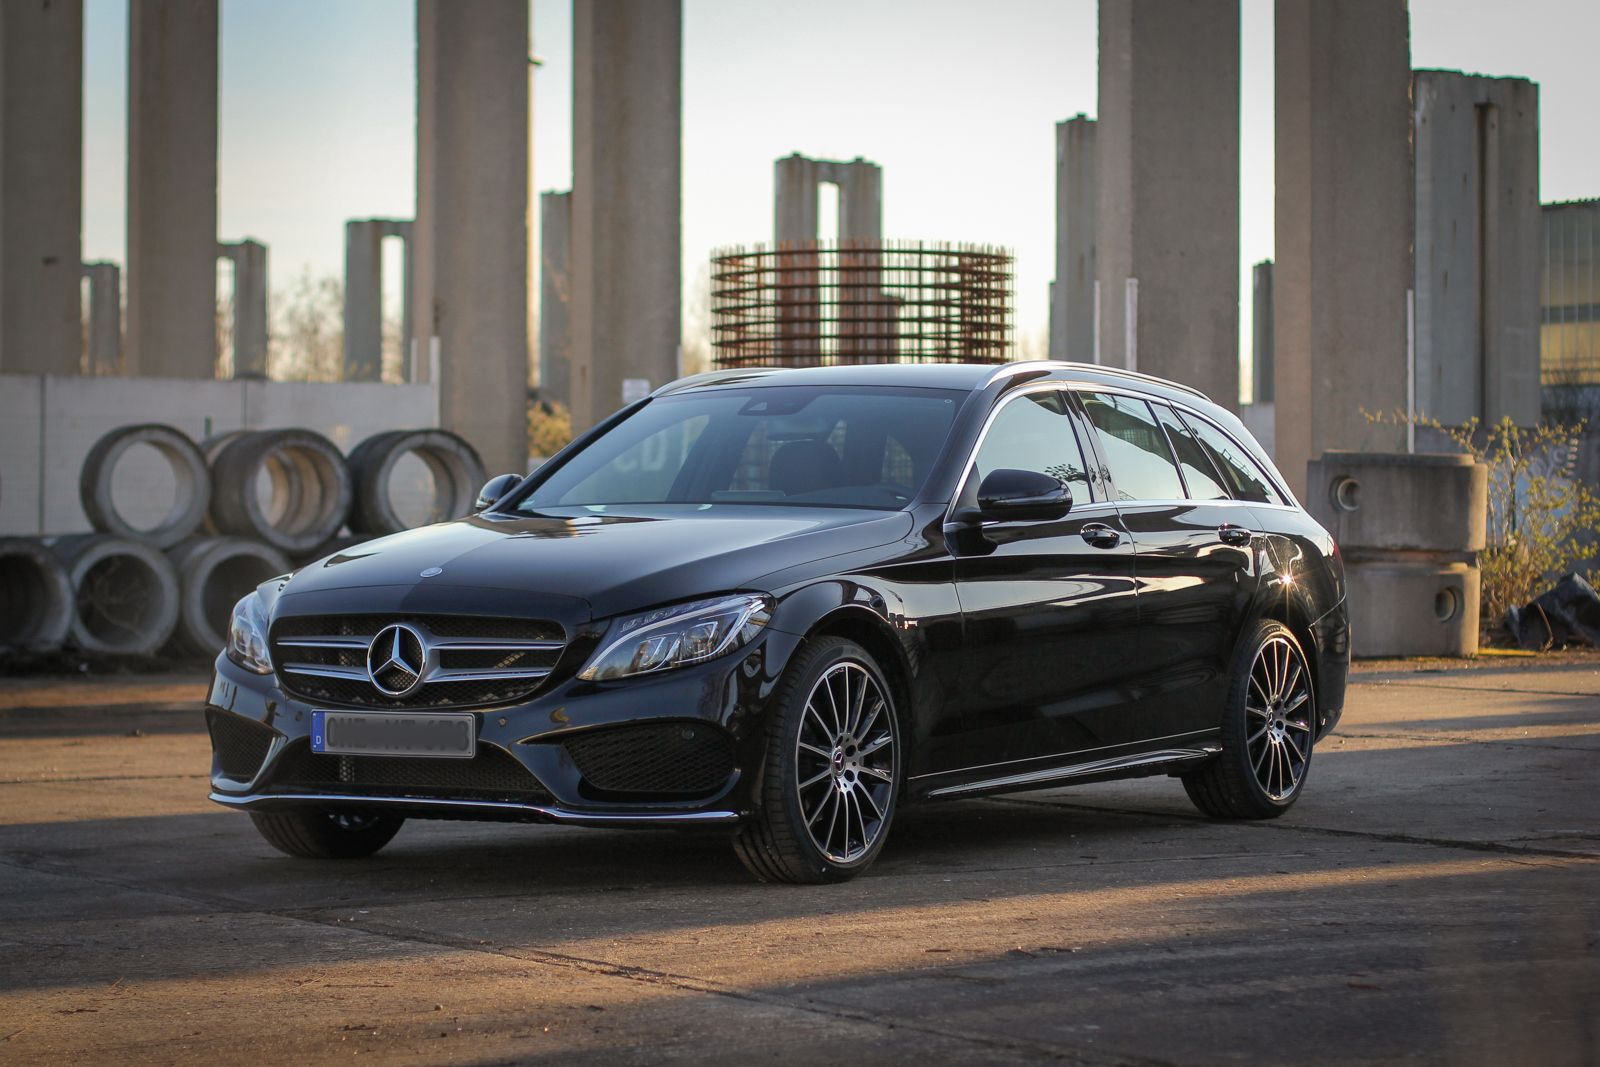 mercedes benz c klasse t modell amg line mercedes benz c klasse pinterest. Black Bedroom Furniture Sets. Home Design Ideas